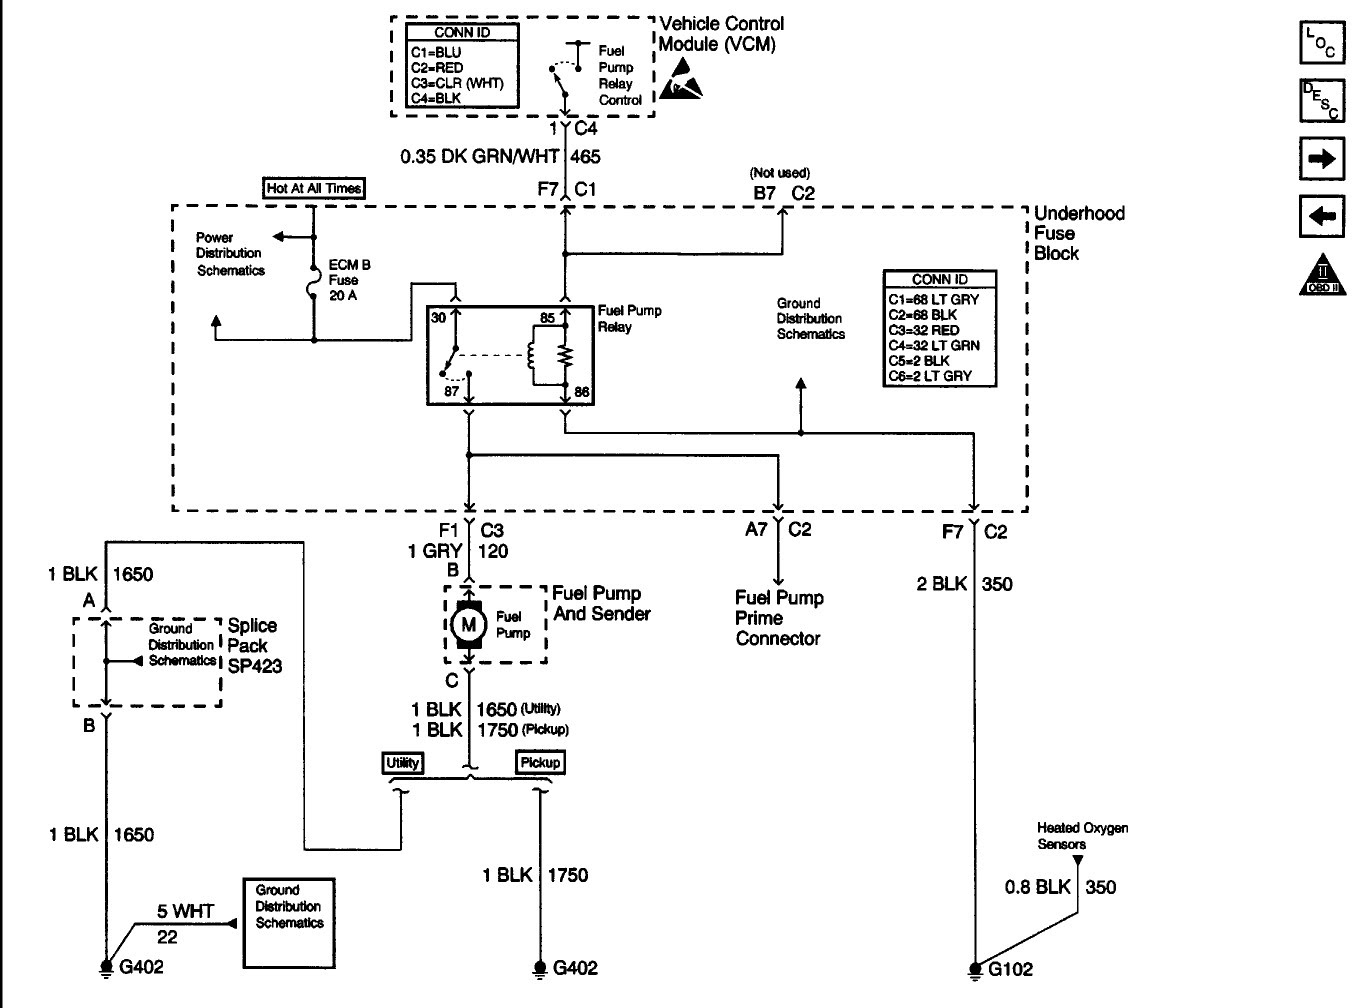 2000 Chevy S10 Wiring Harness Wiring Diagram Camp Make A Camp Make A Cfcarsnoleggio It